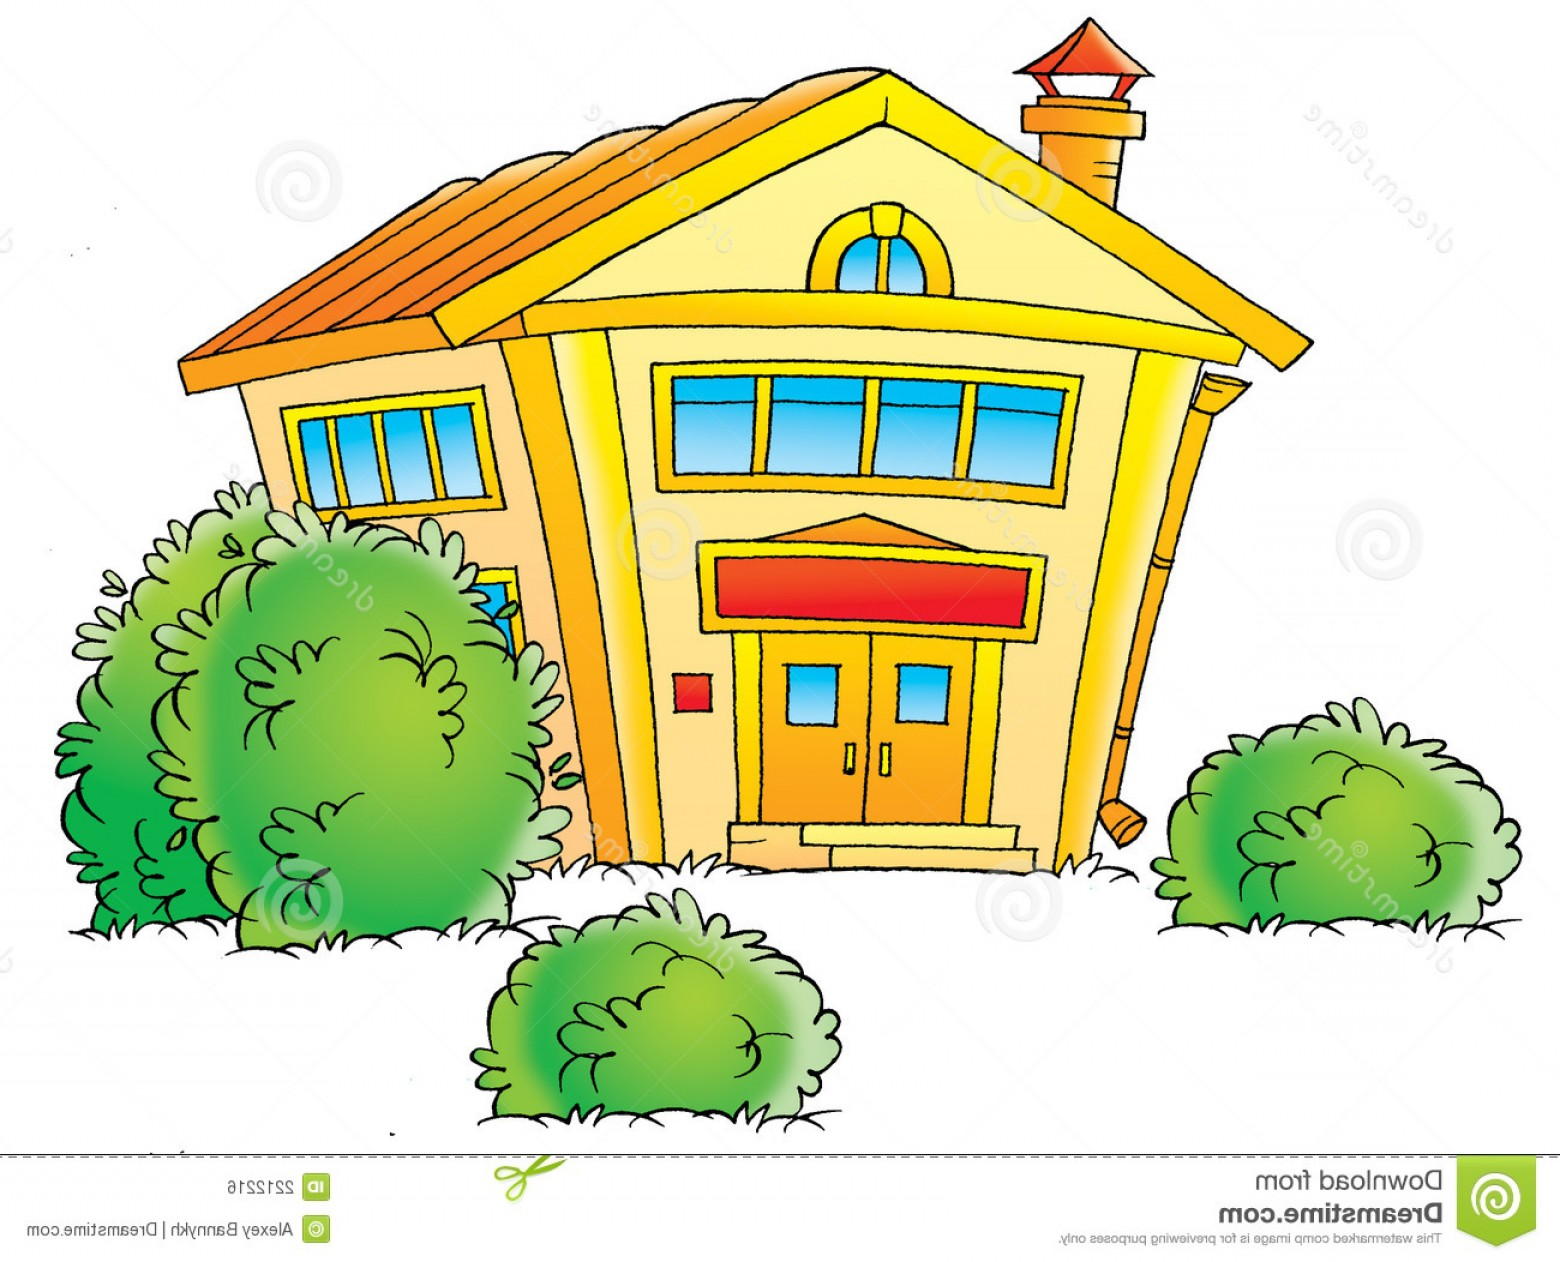 Vector Clip Art Red Schoolhouse: Royalty Free Stock Image Schoolhouse Image